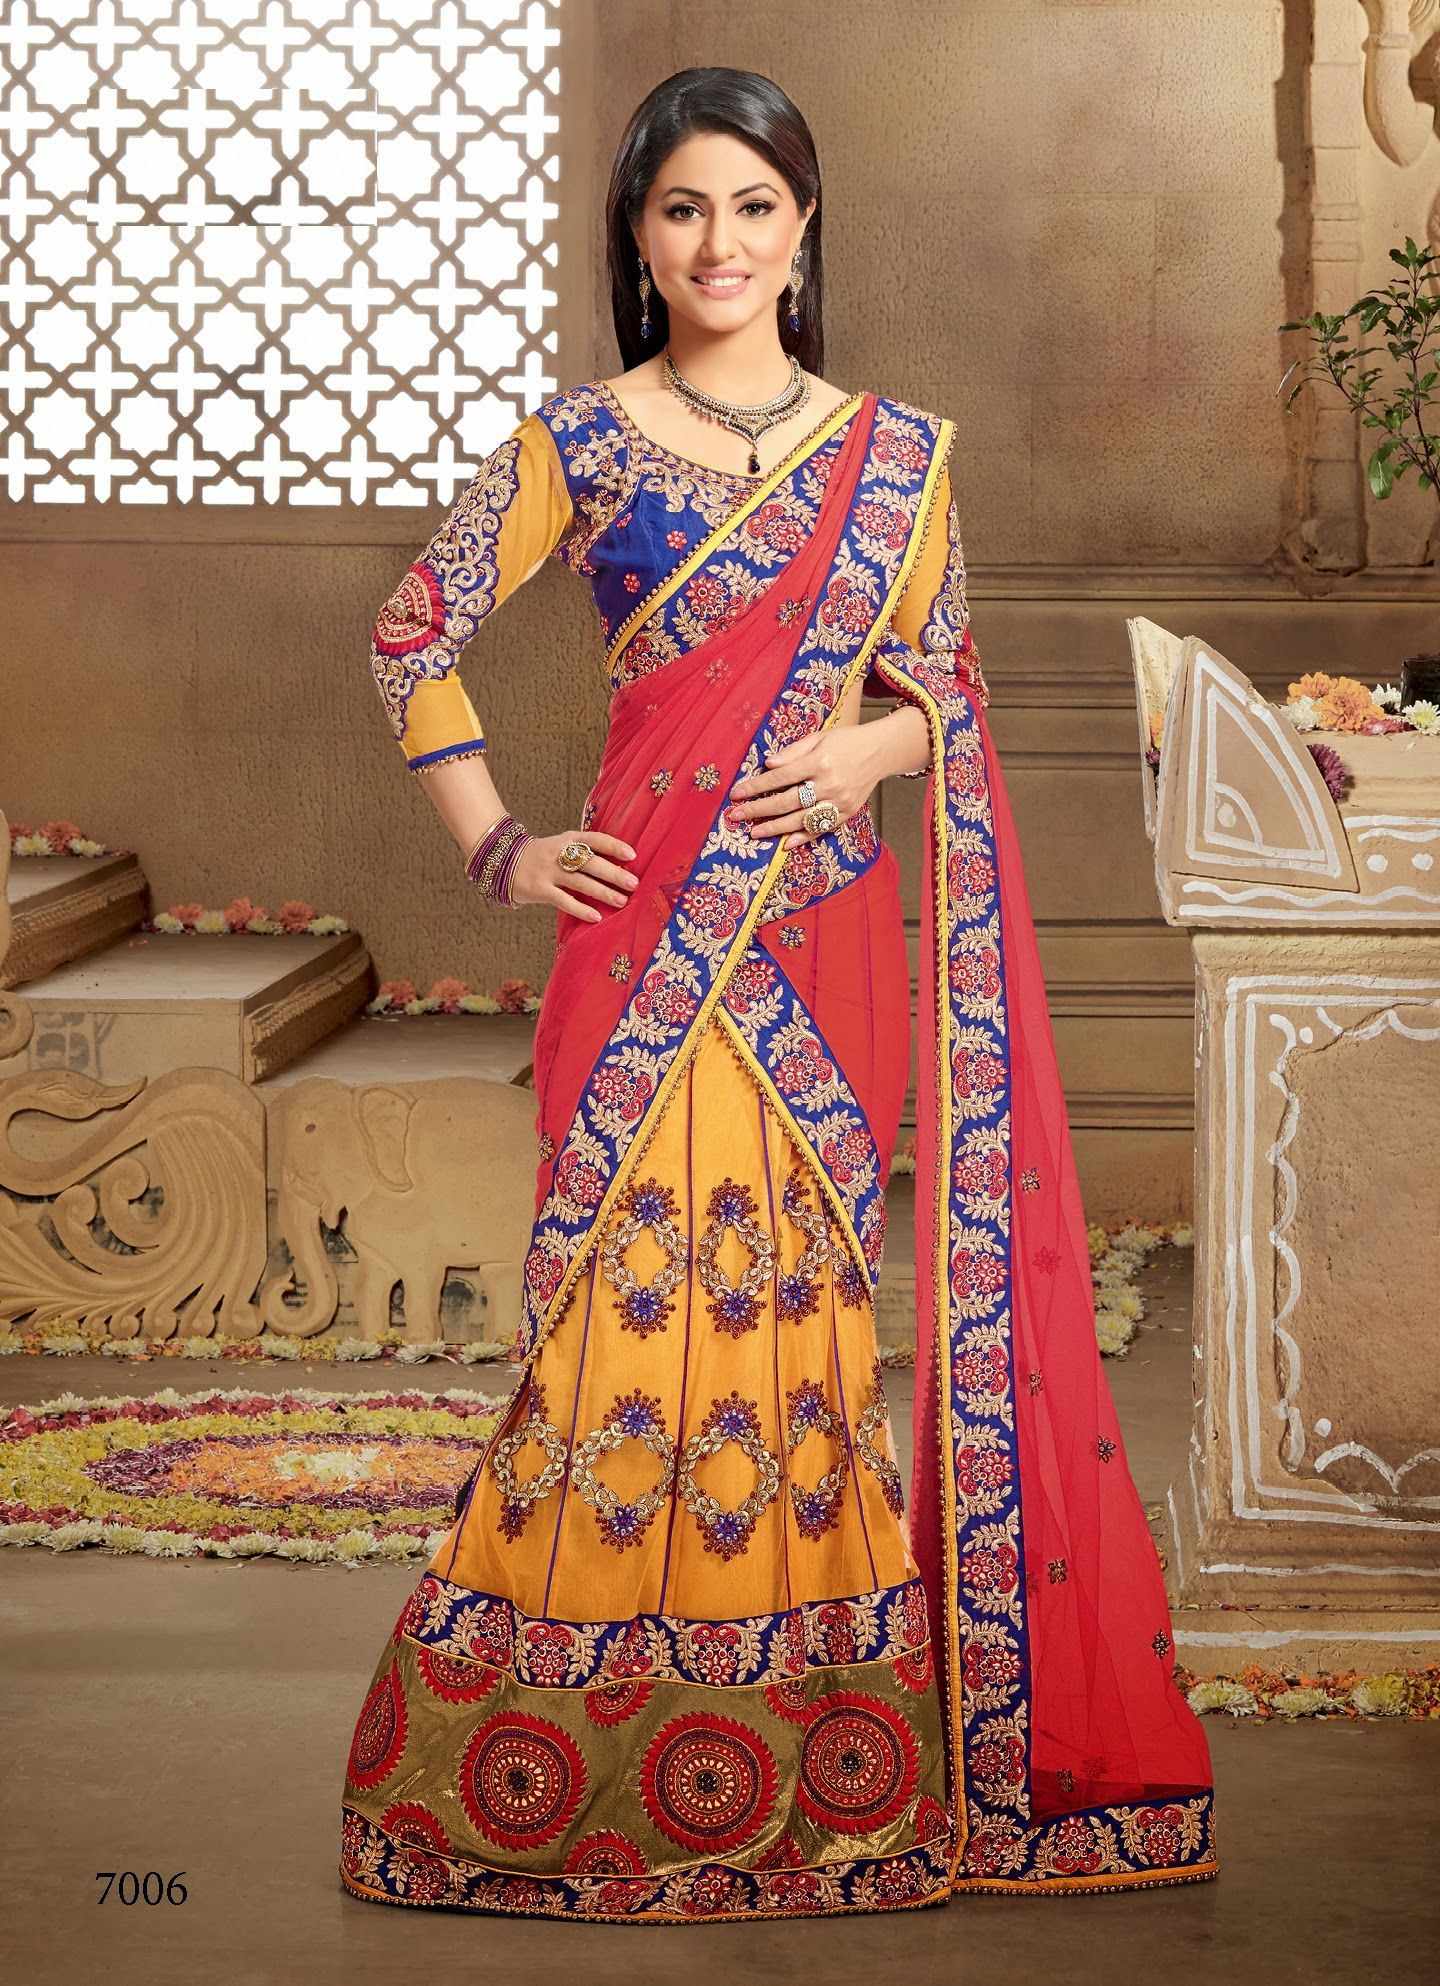 Fashion and you lehenga saree 8